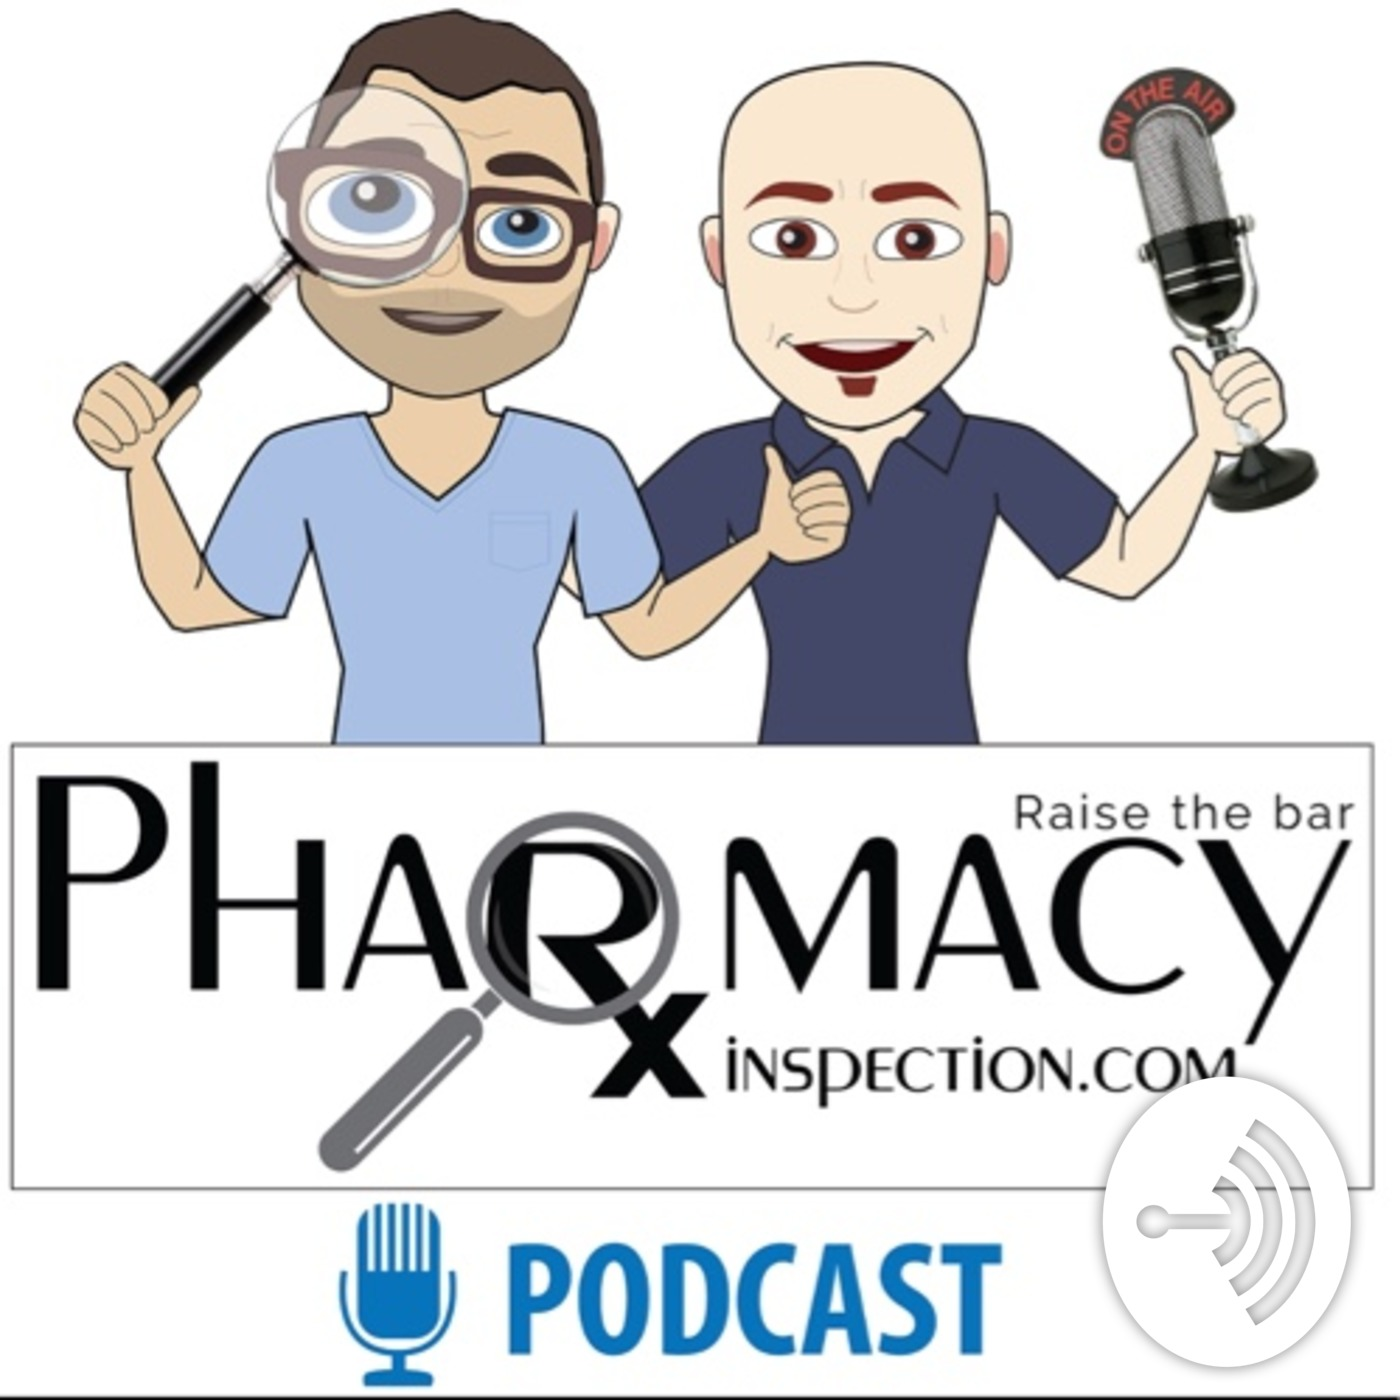 Pharmacy Inspection Podcast Episode 34 – Viable Air Sampling